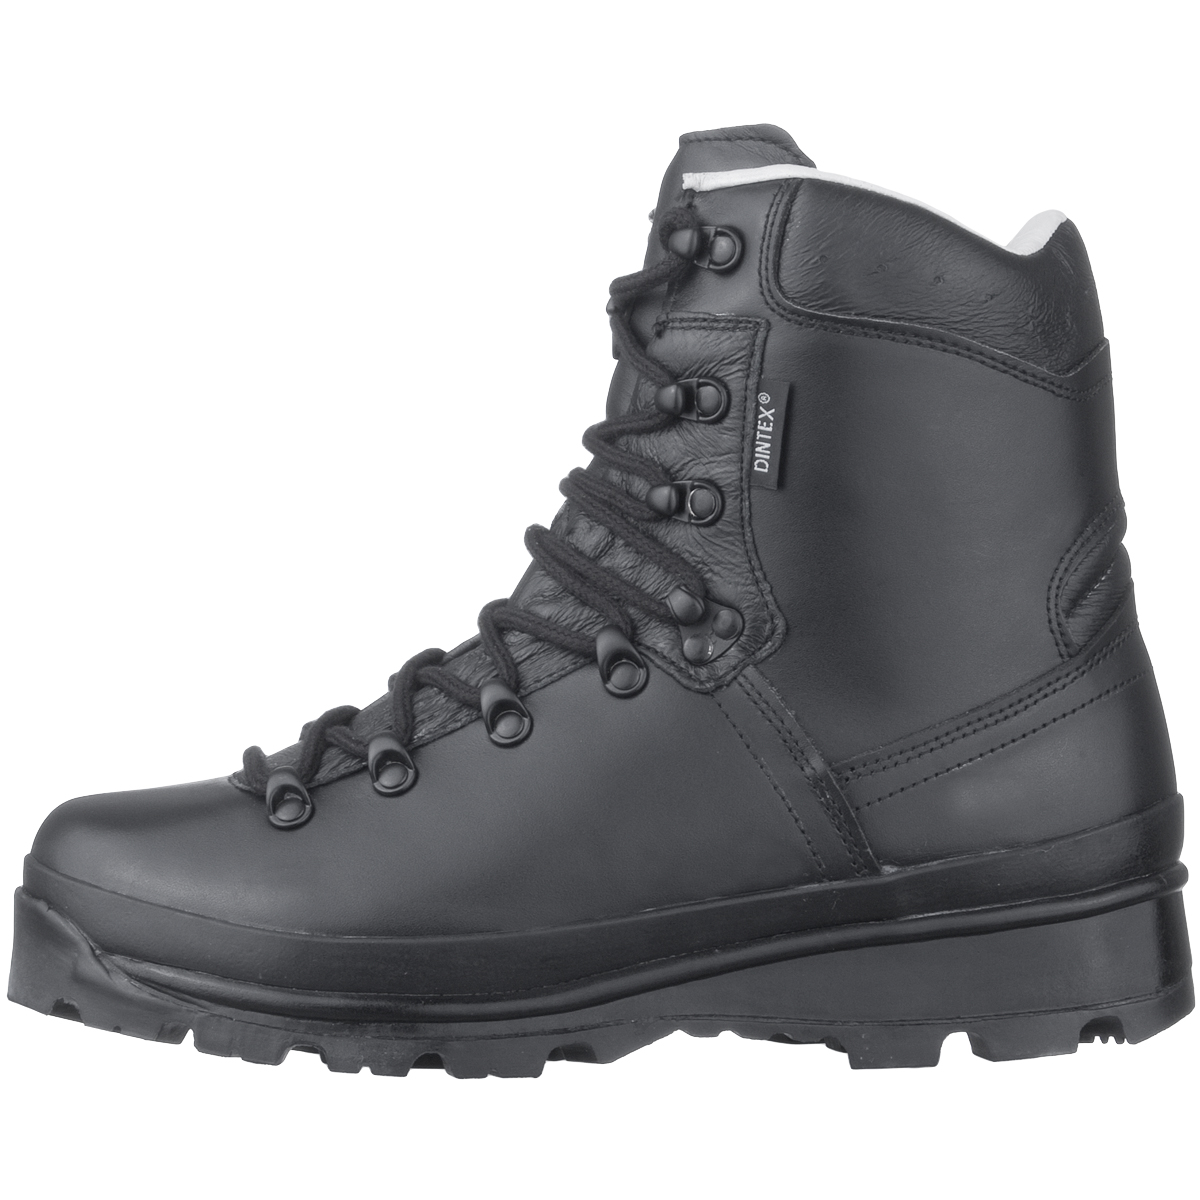 German Army Mountain Combat Boots Bw Military Police Cadet